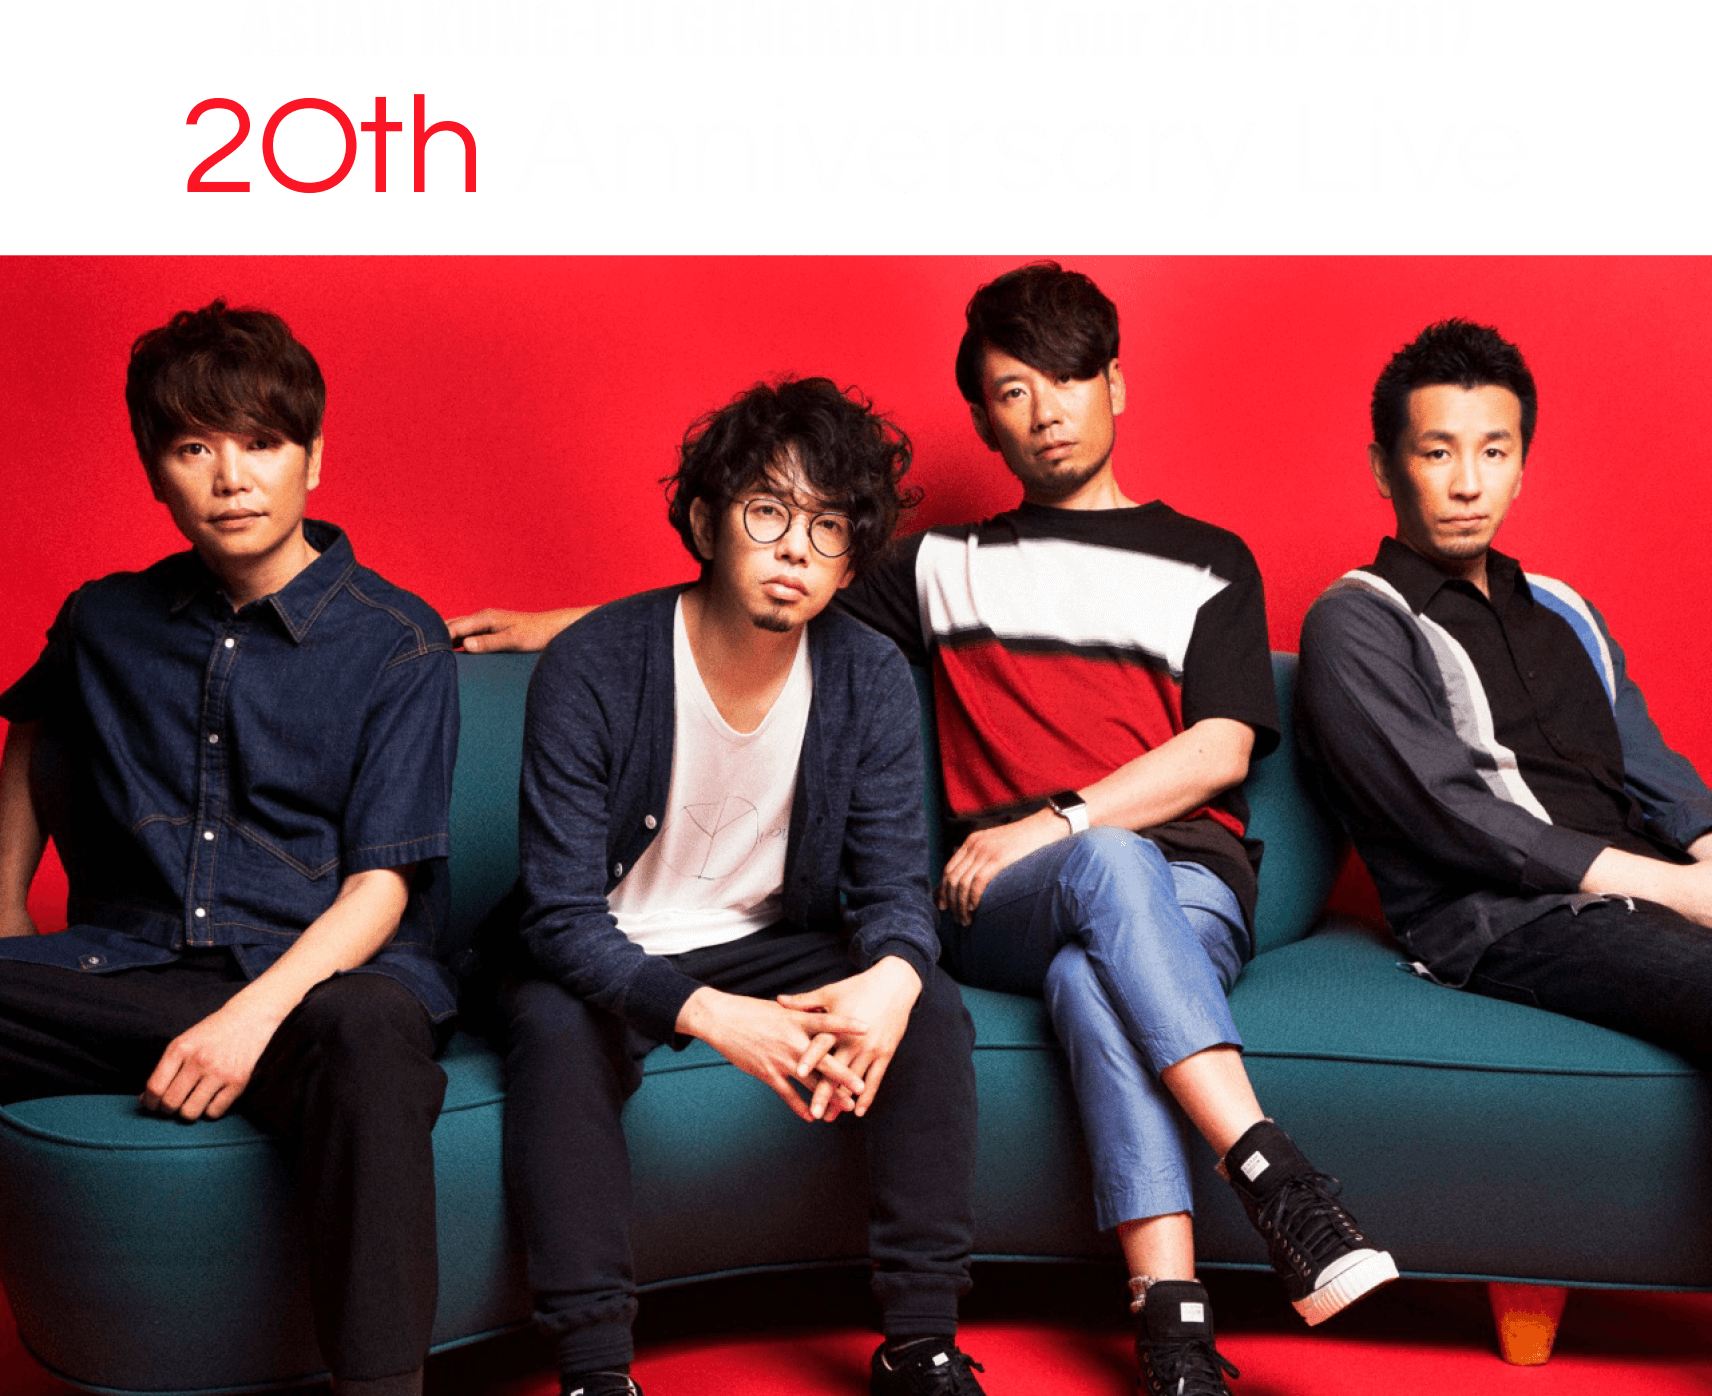 asian kung fu generation tour 2016 2017 20th anniversary live